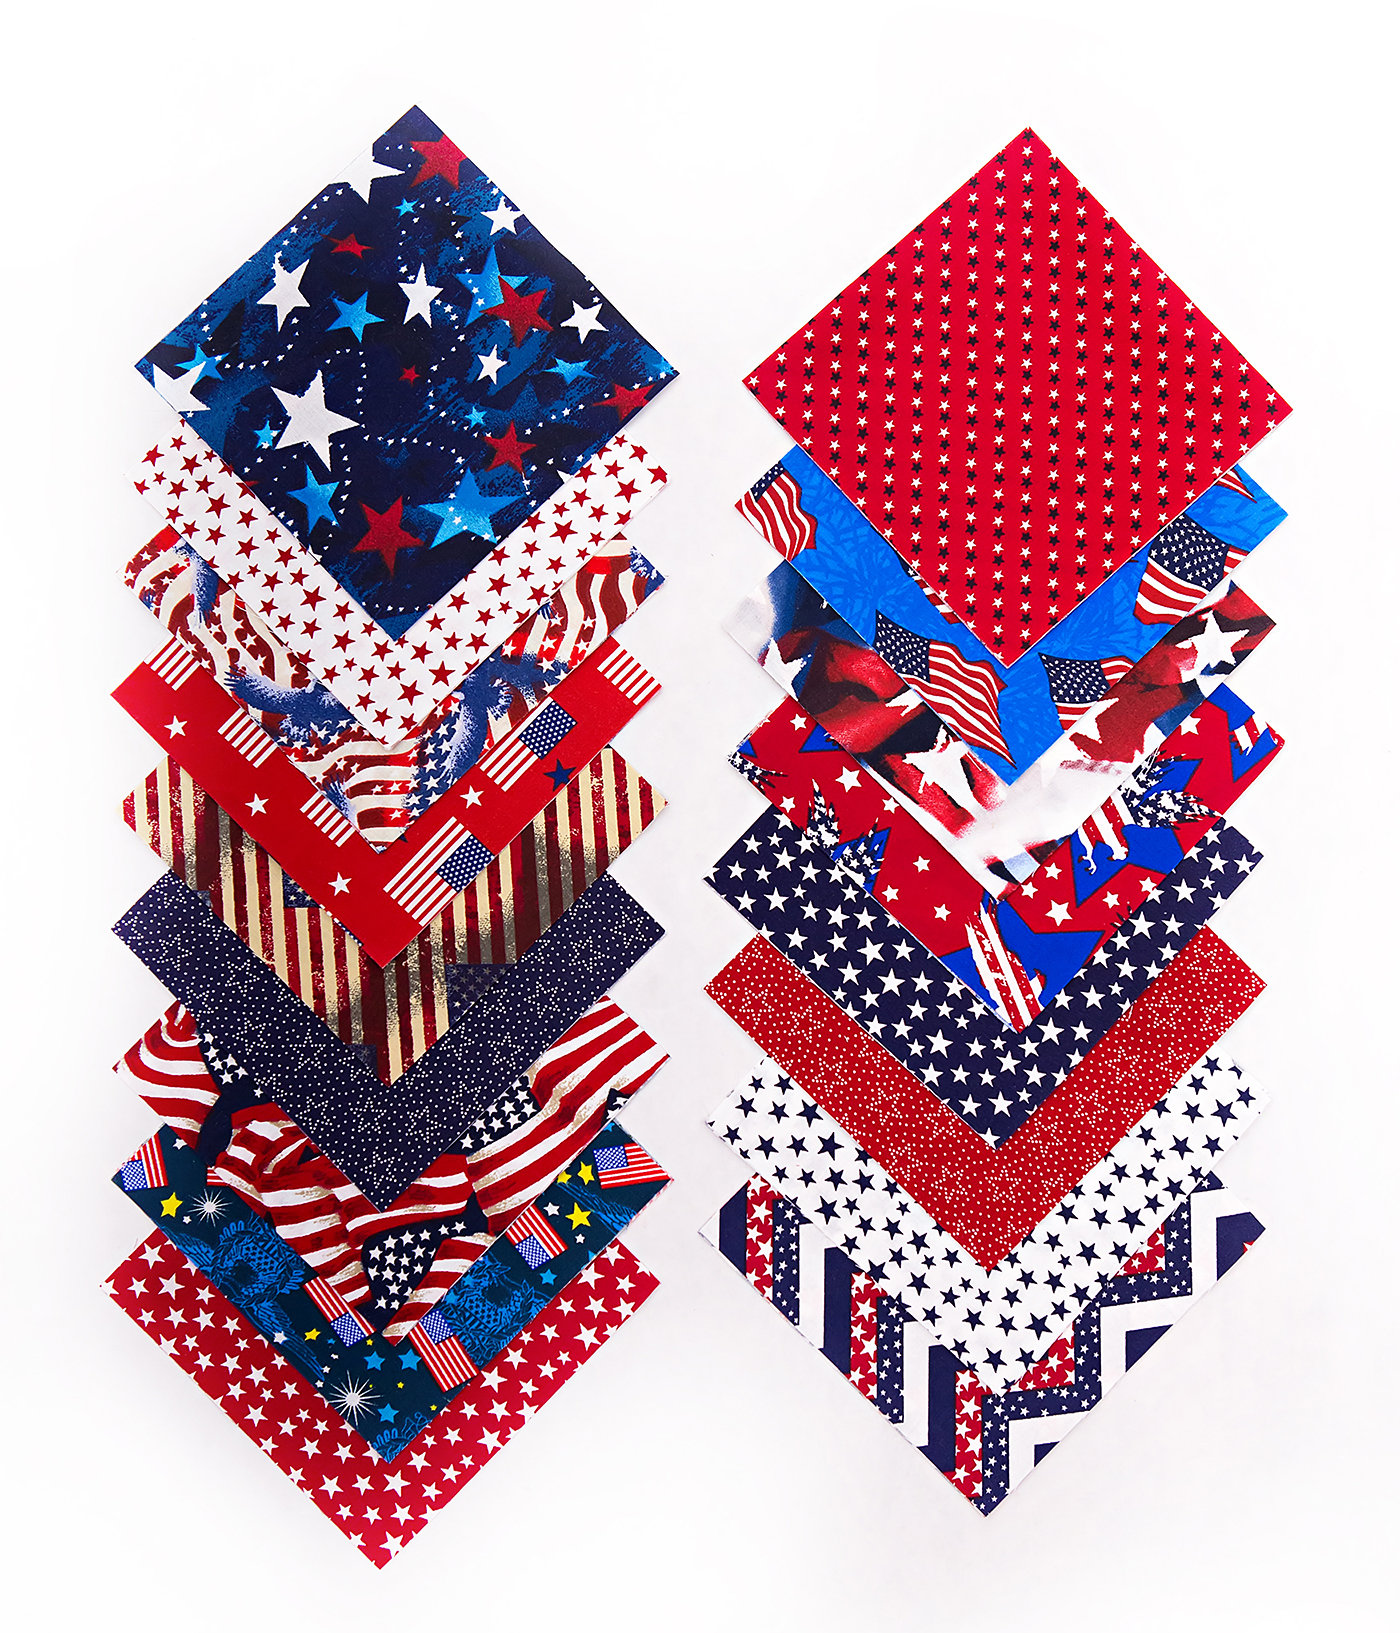 96pc STARS and STRIPES Patriotic Pre-Cut Charm pack 5 x 5 Inch Quilt Fabric Squares